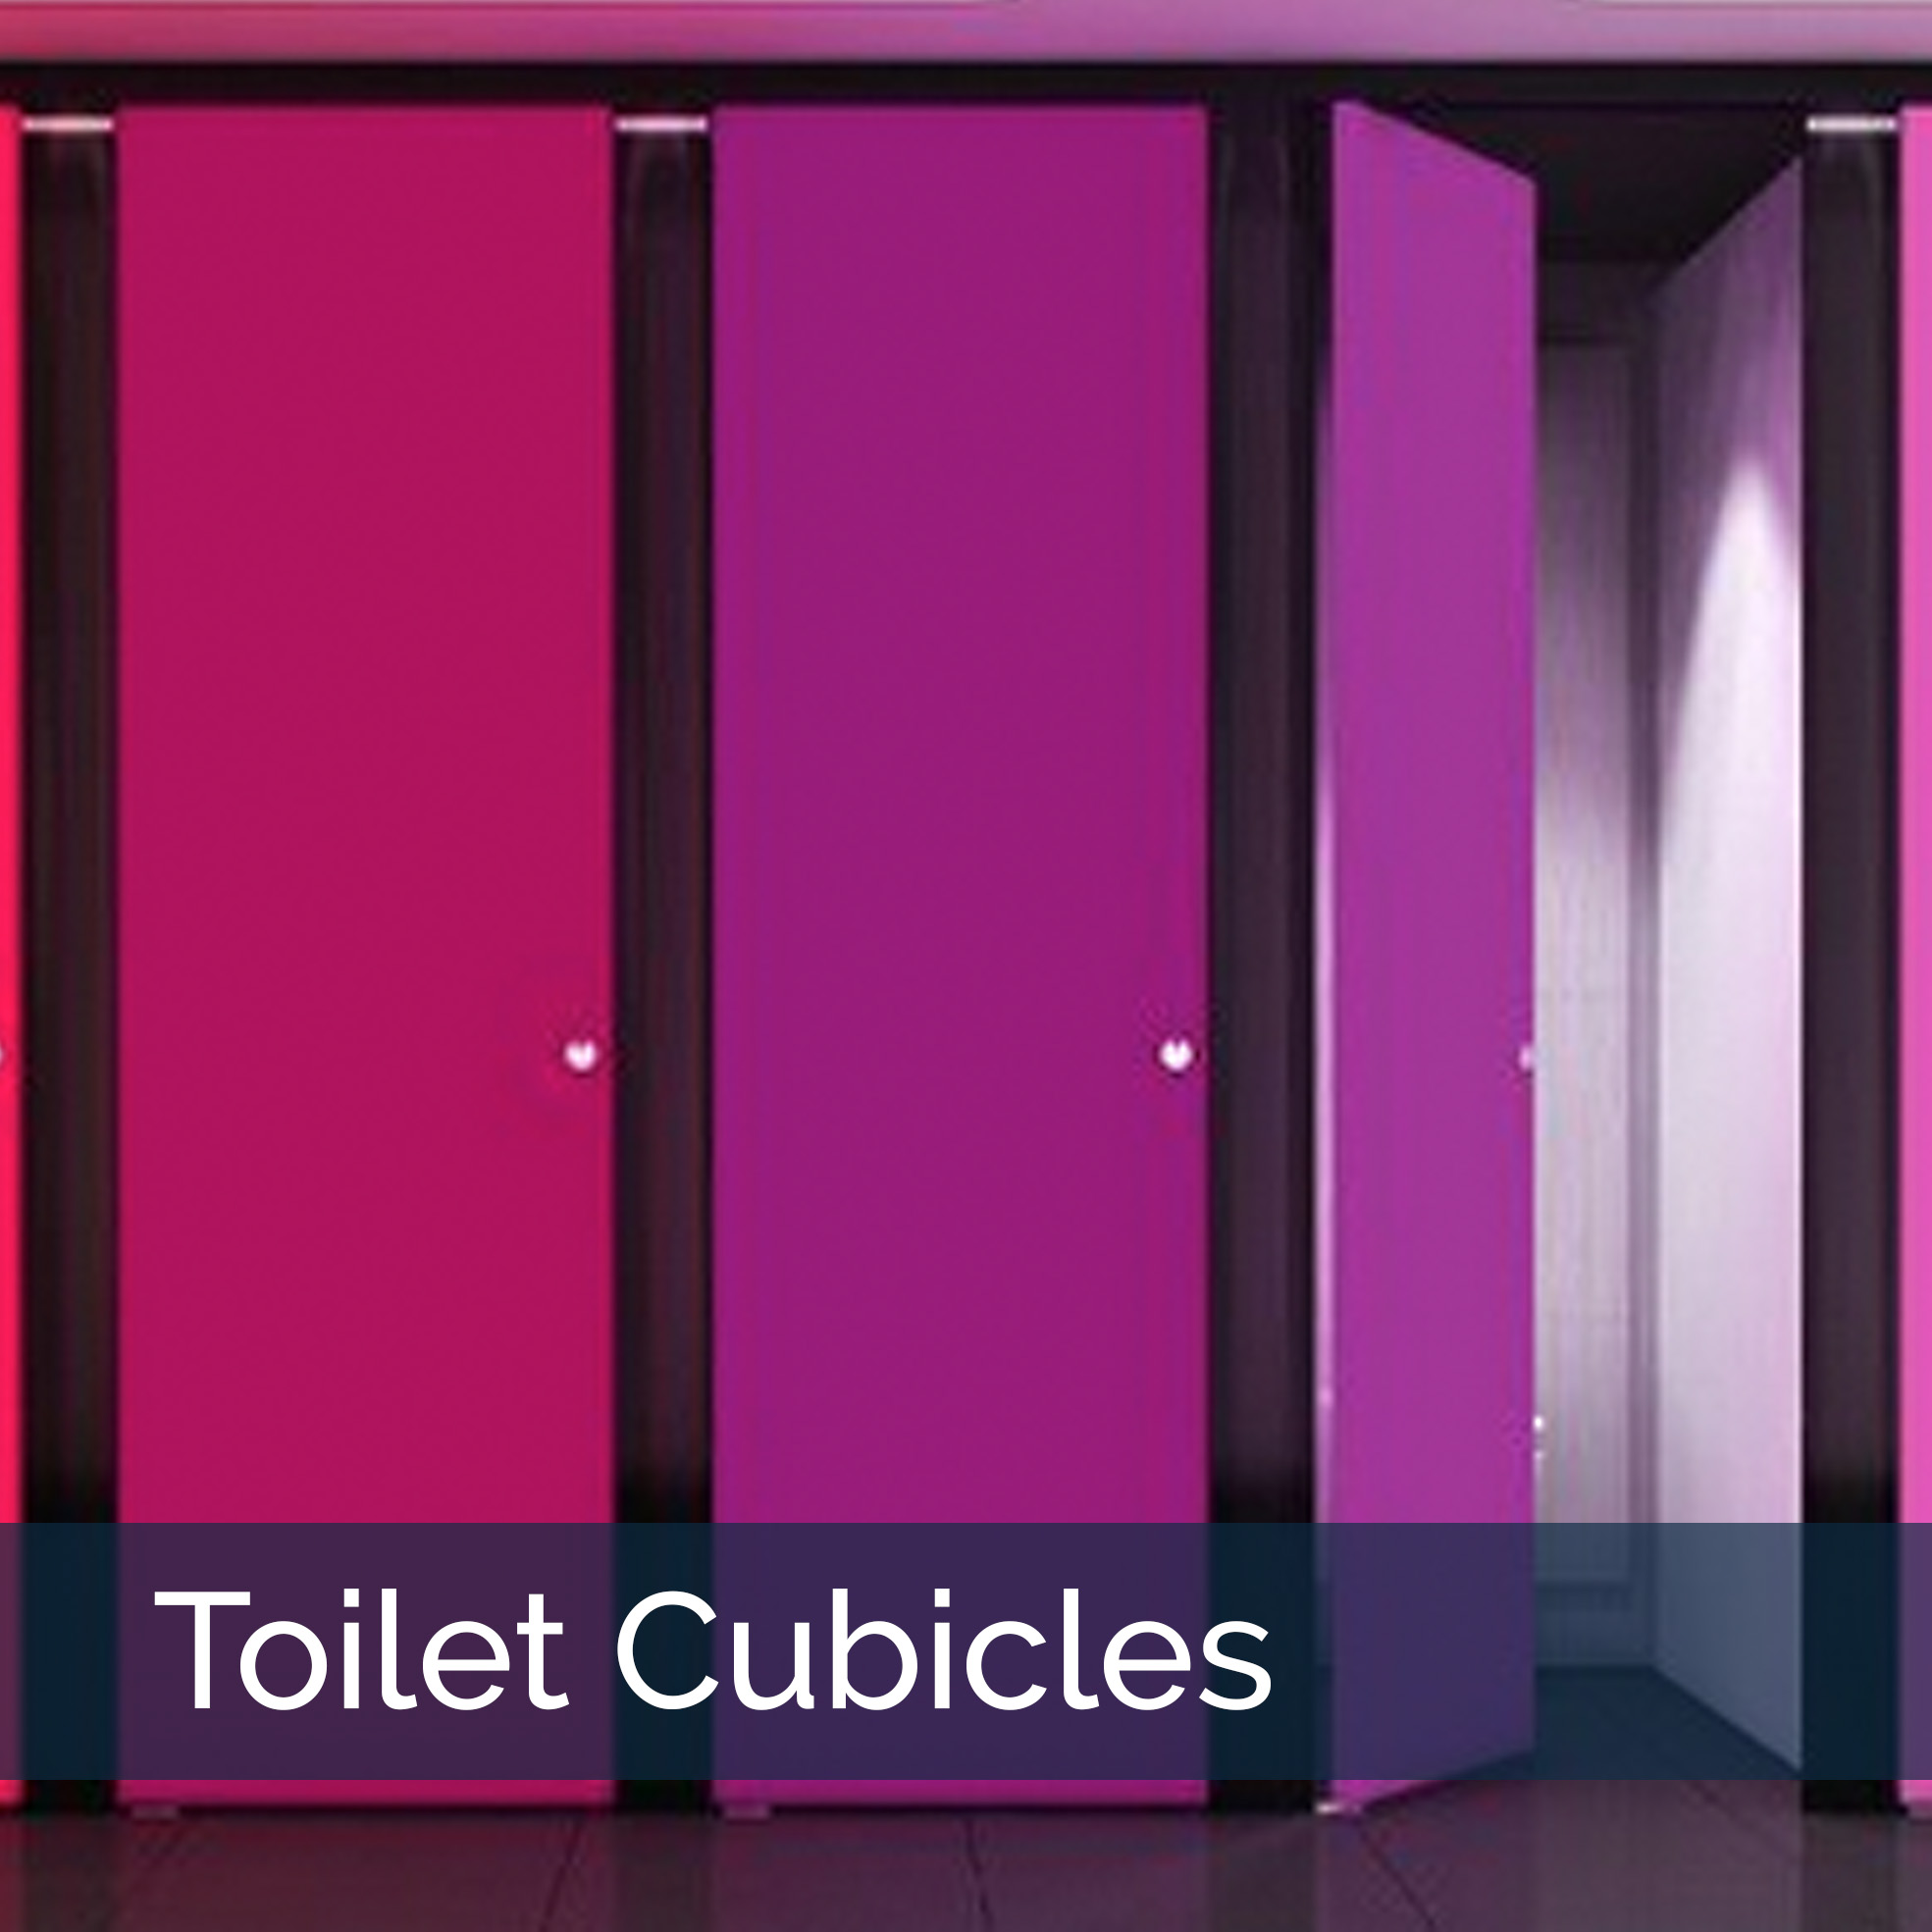 allied workspace toilet cubicles